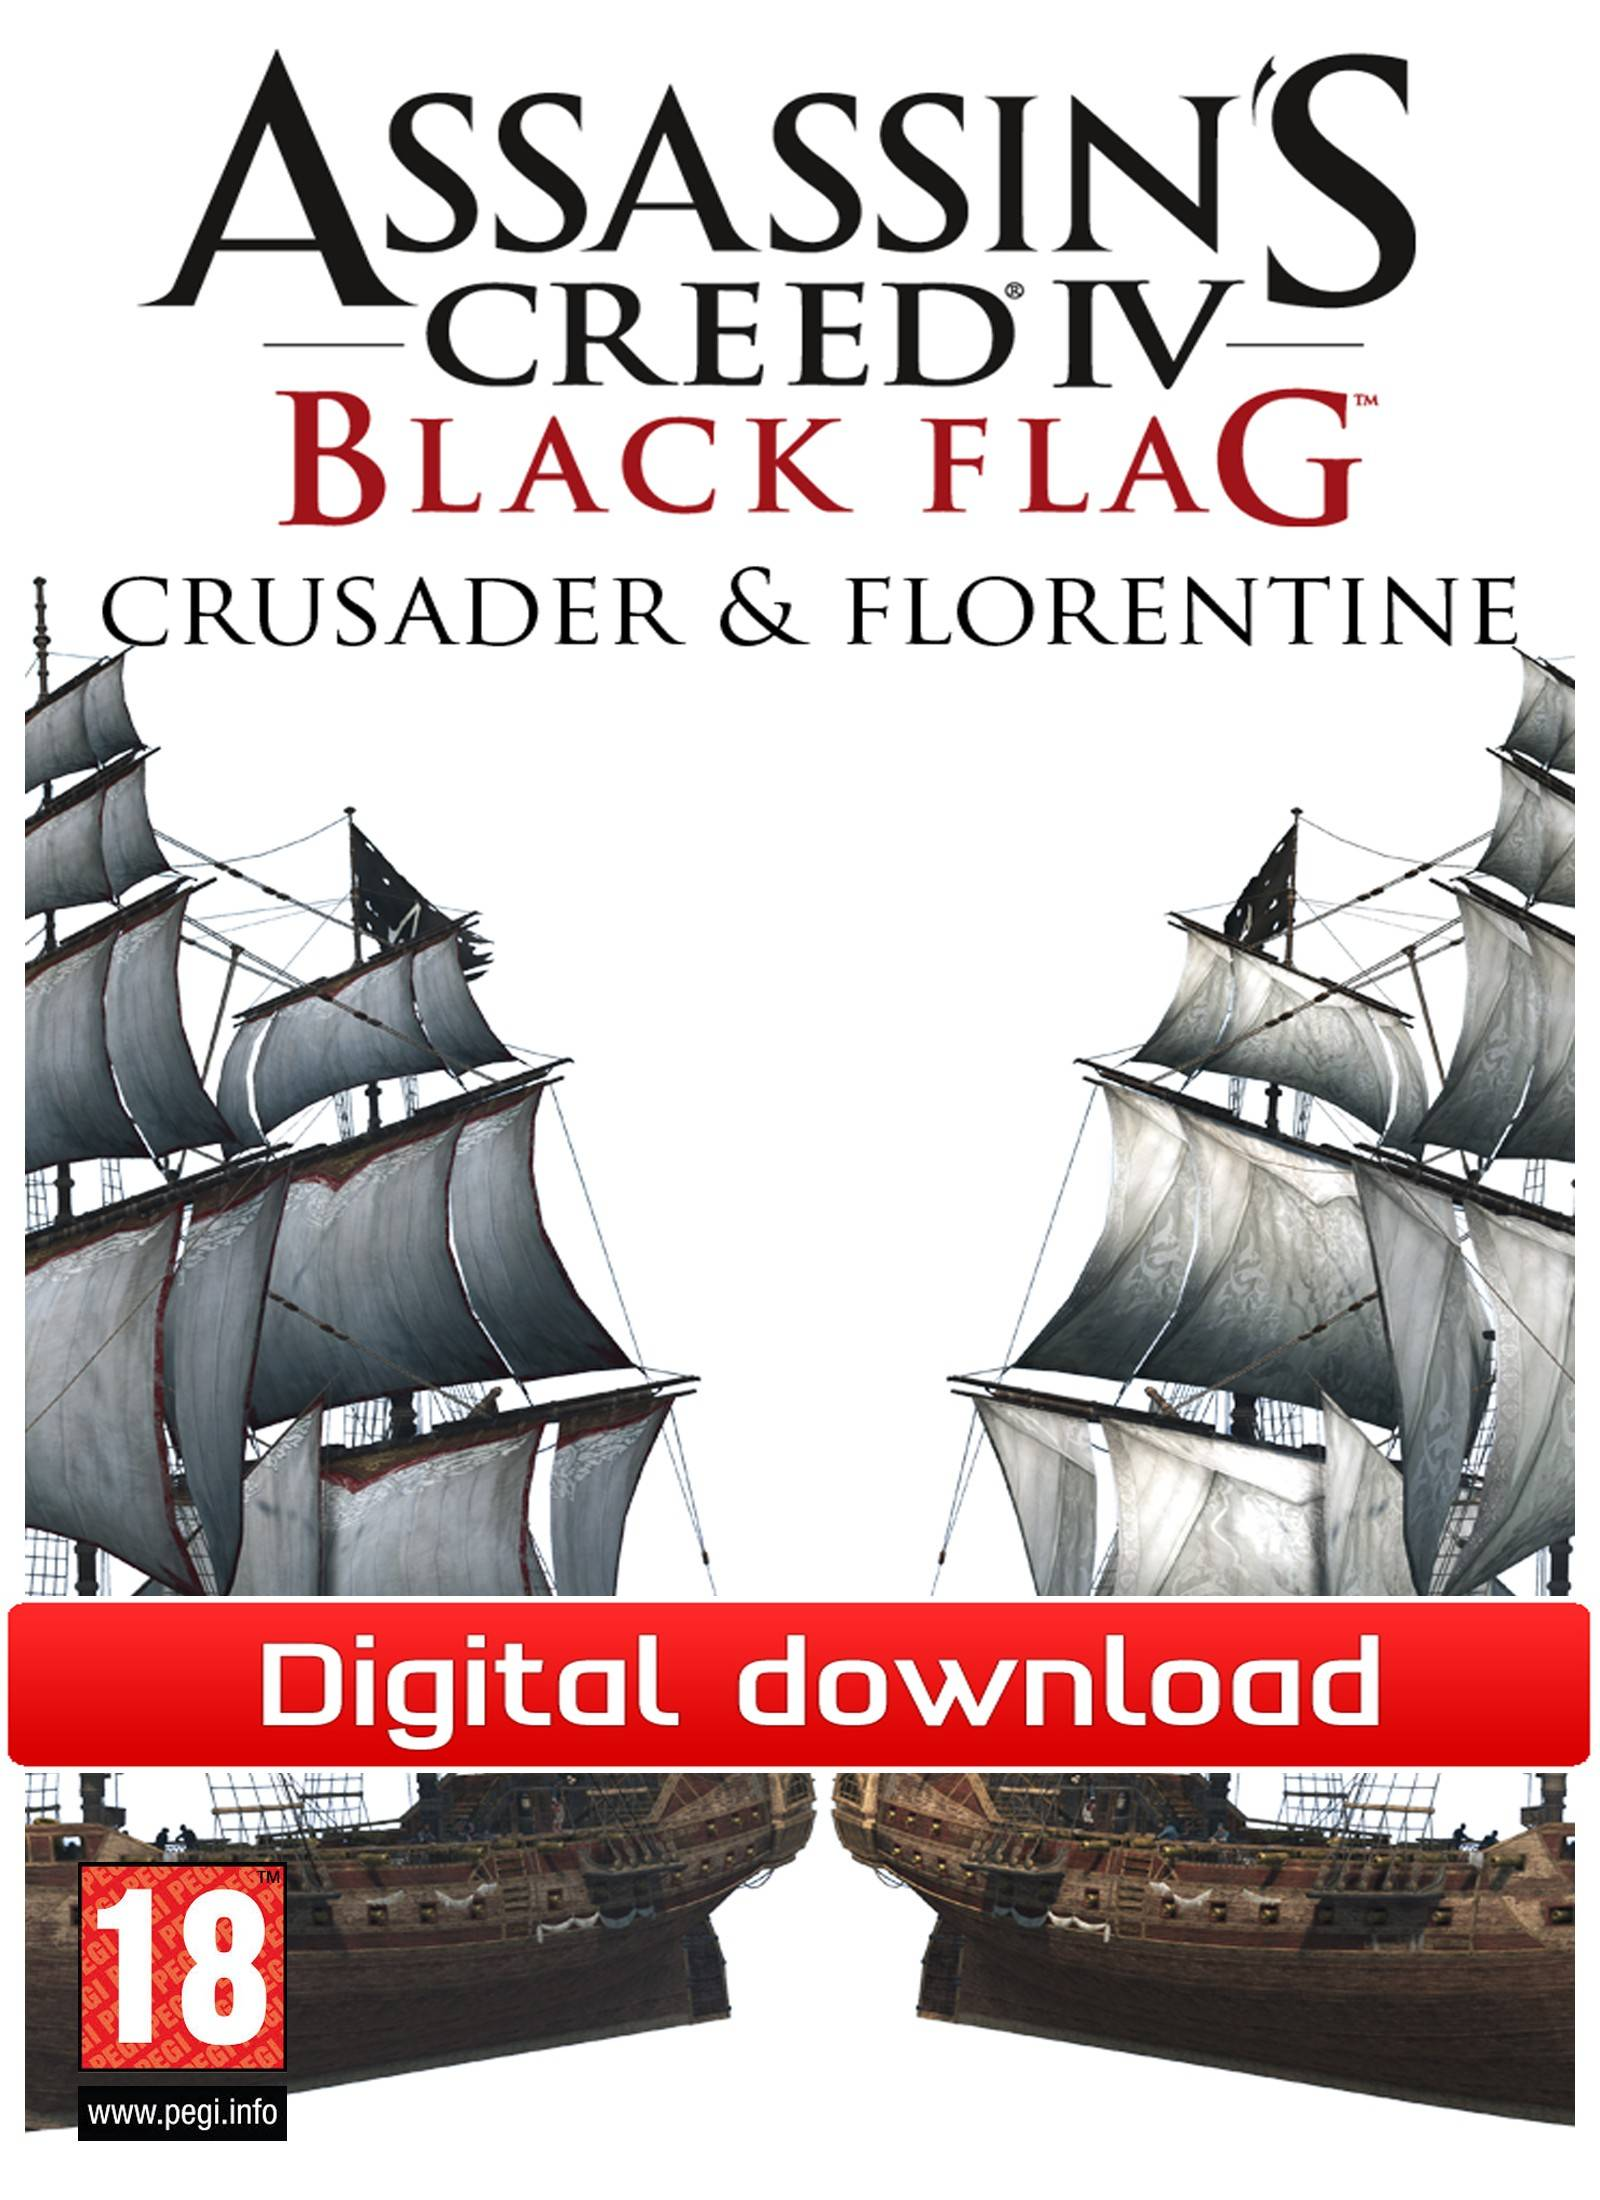 Ubisoft Assassins Creed IV:Black Flag-Crusader&Florentine(Down)